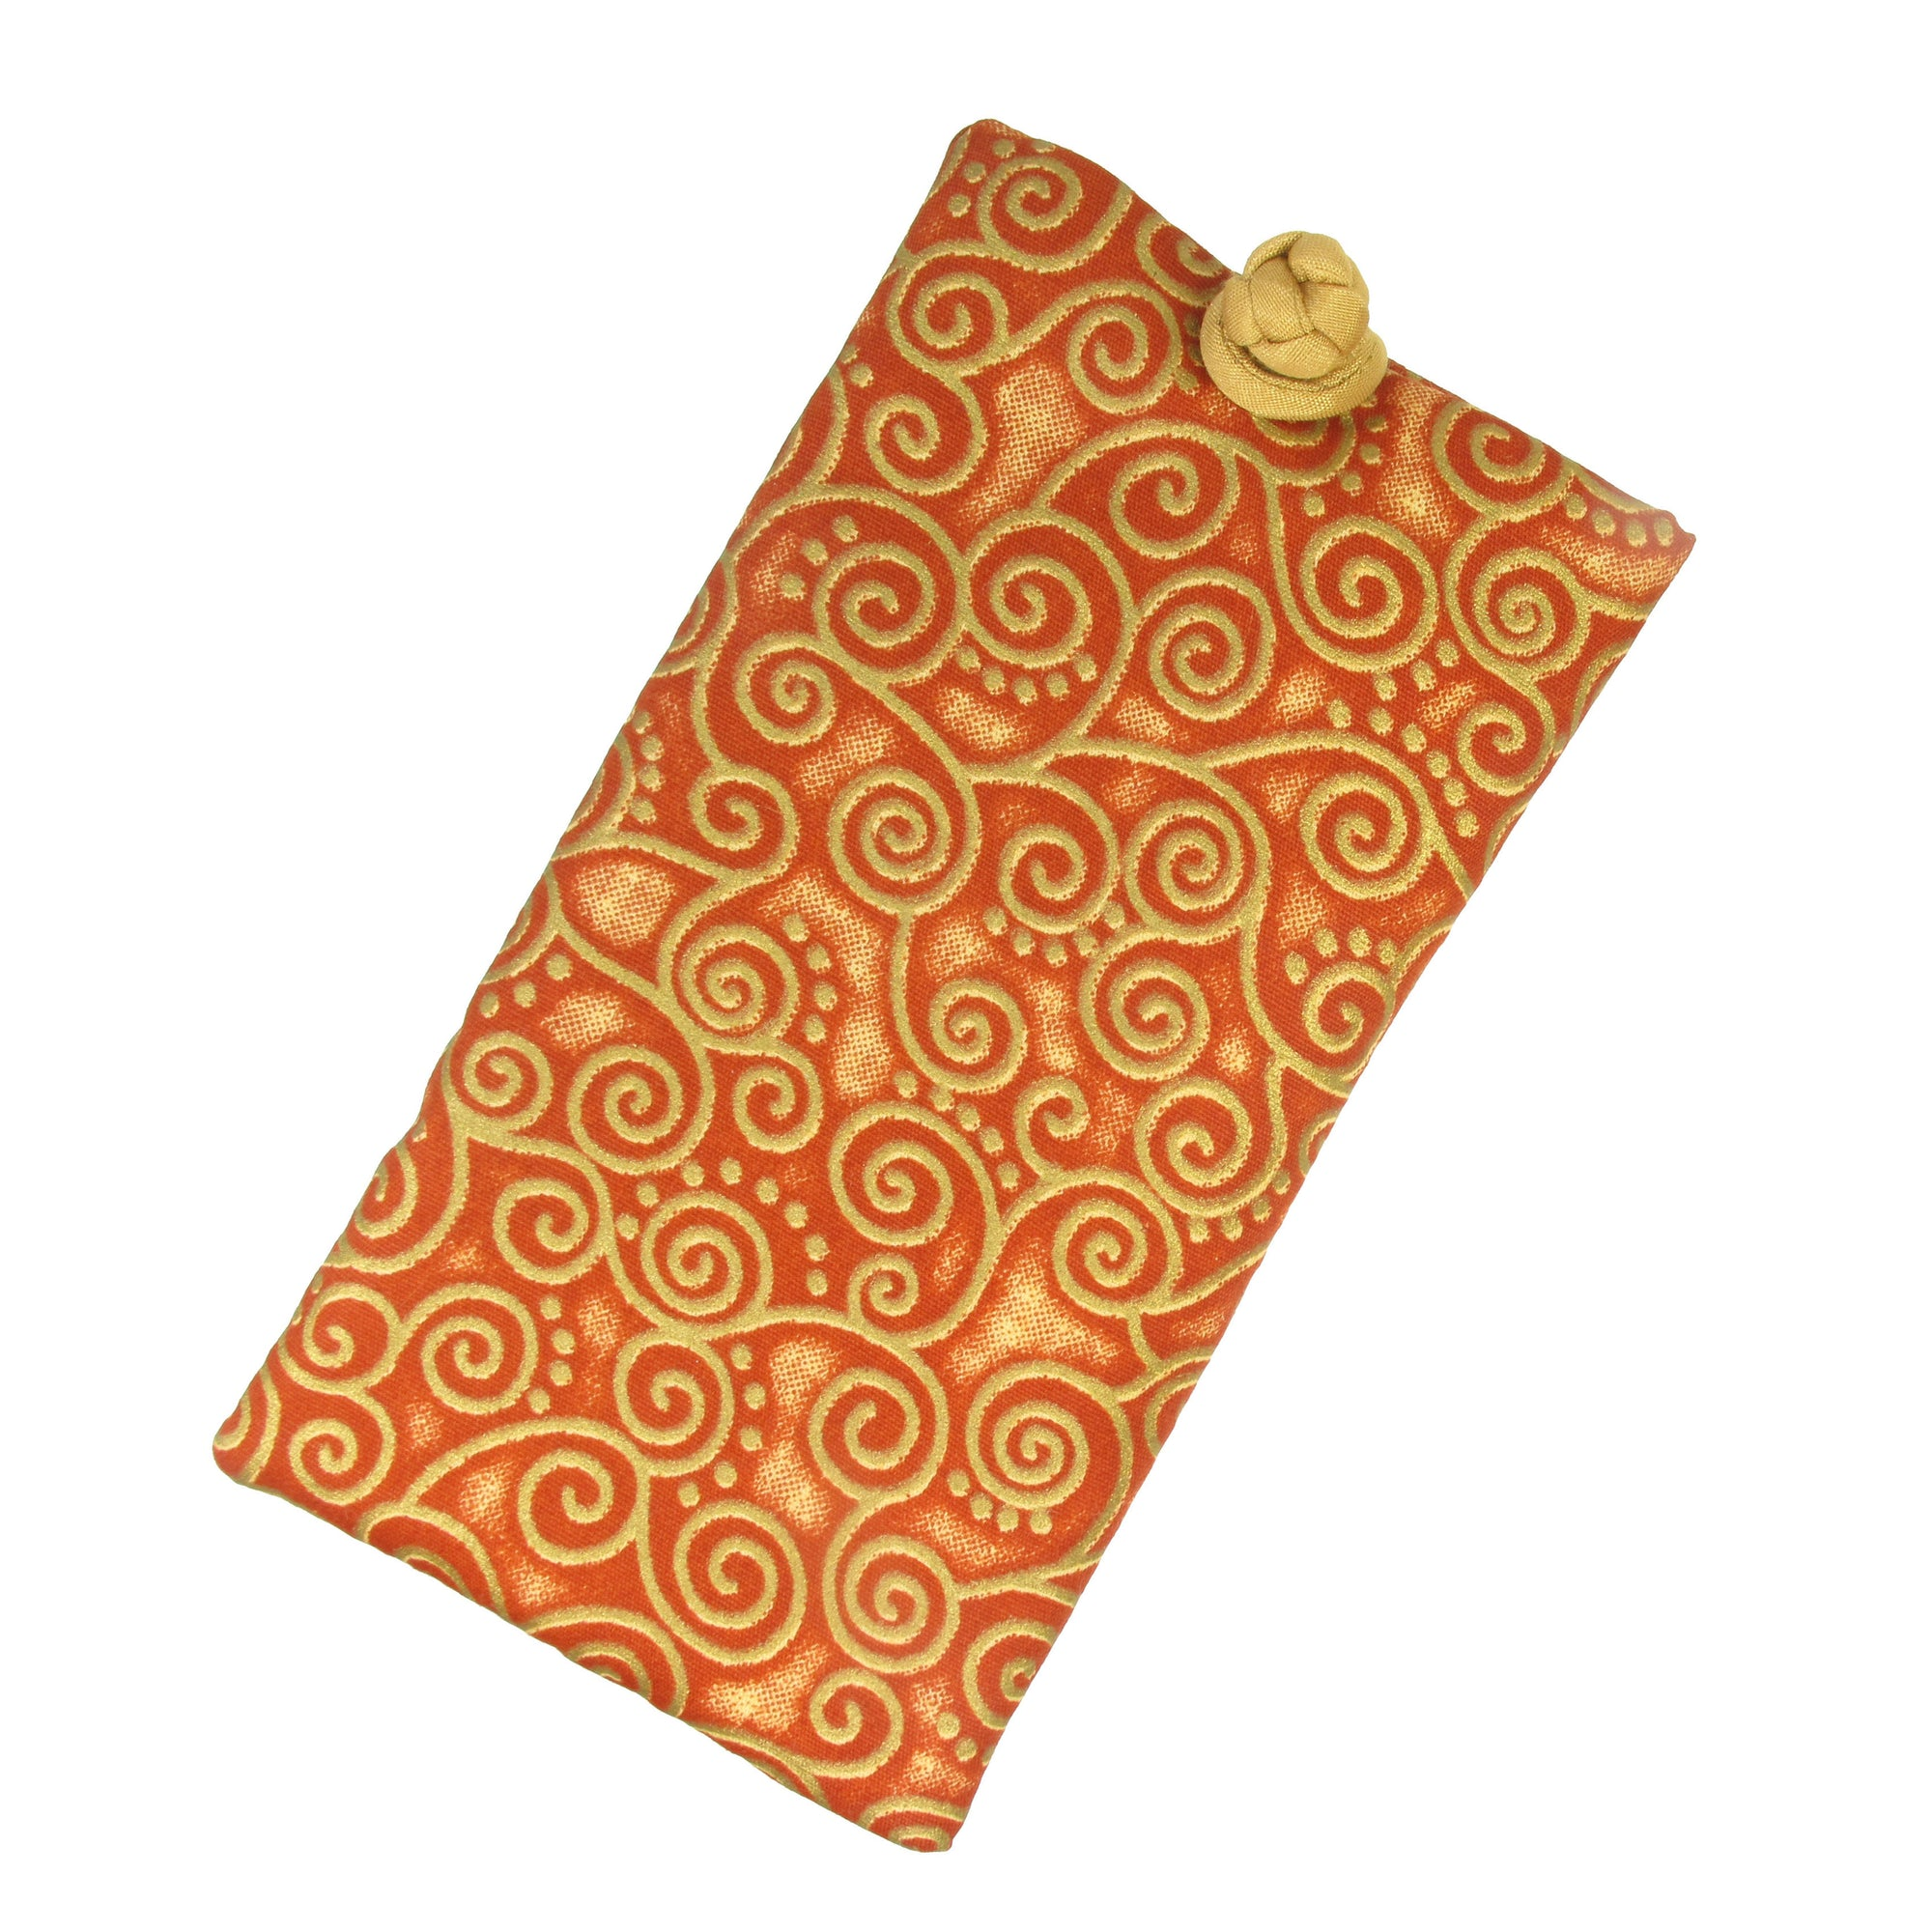 Soft Eyeglass Case (Sunglasses Pouch), Knot and Loop Closure, Cotton and Silk, Rust